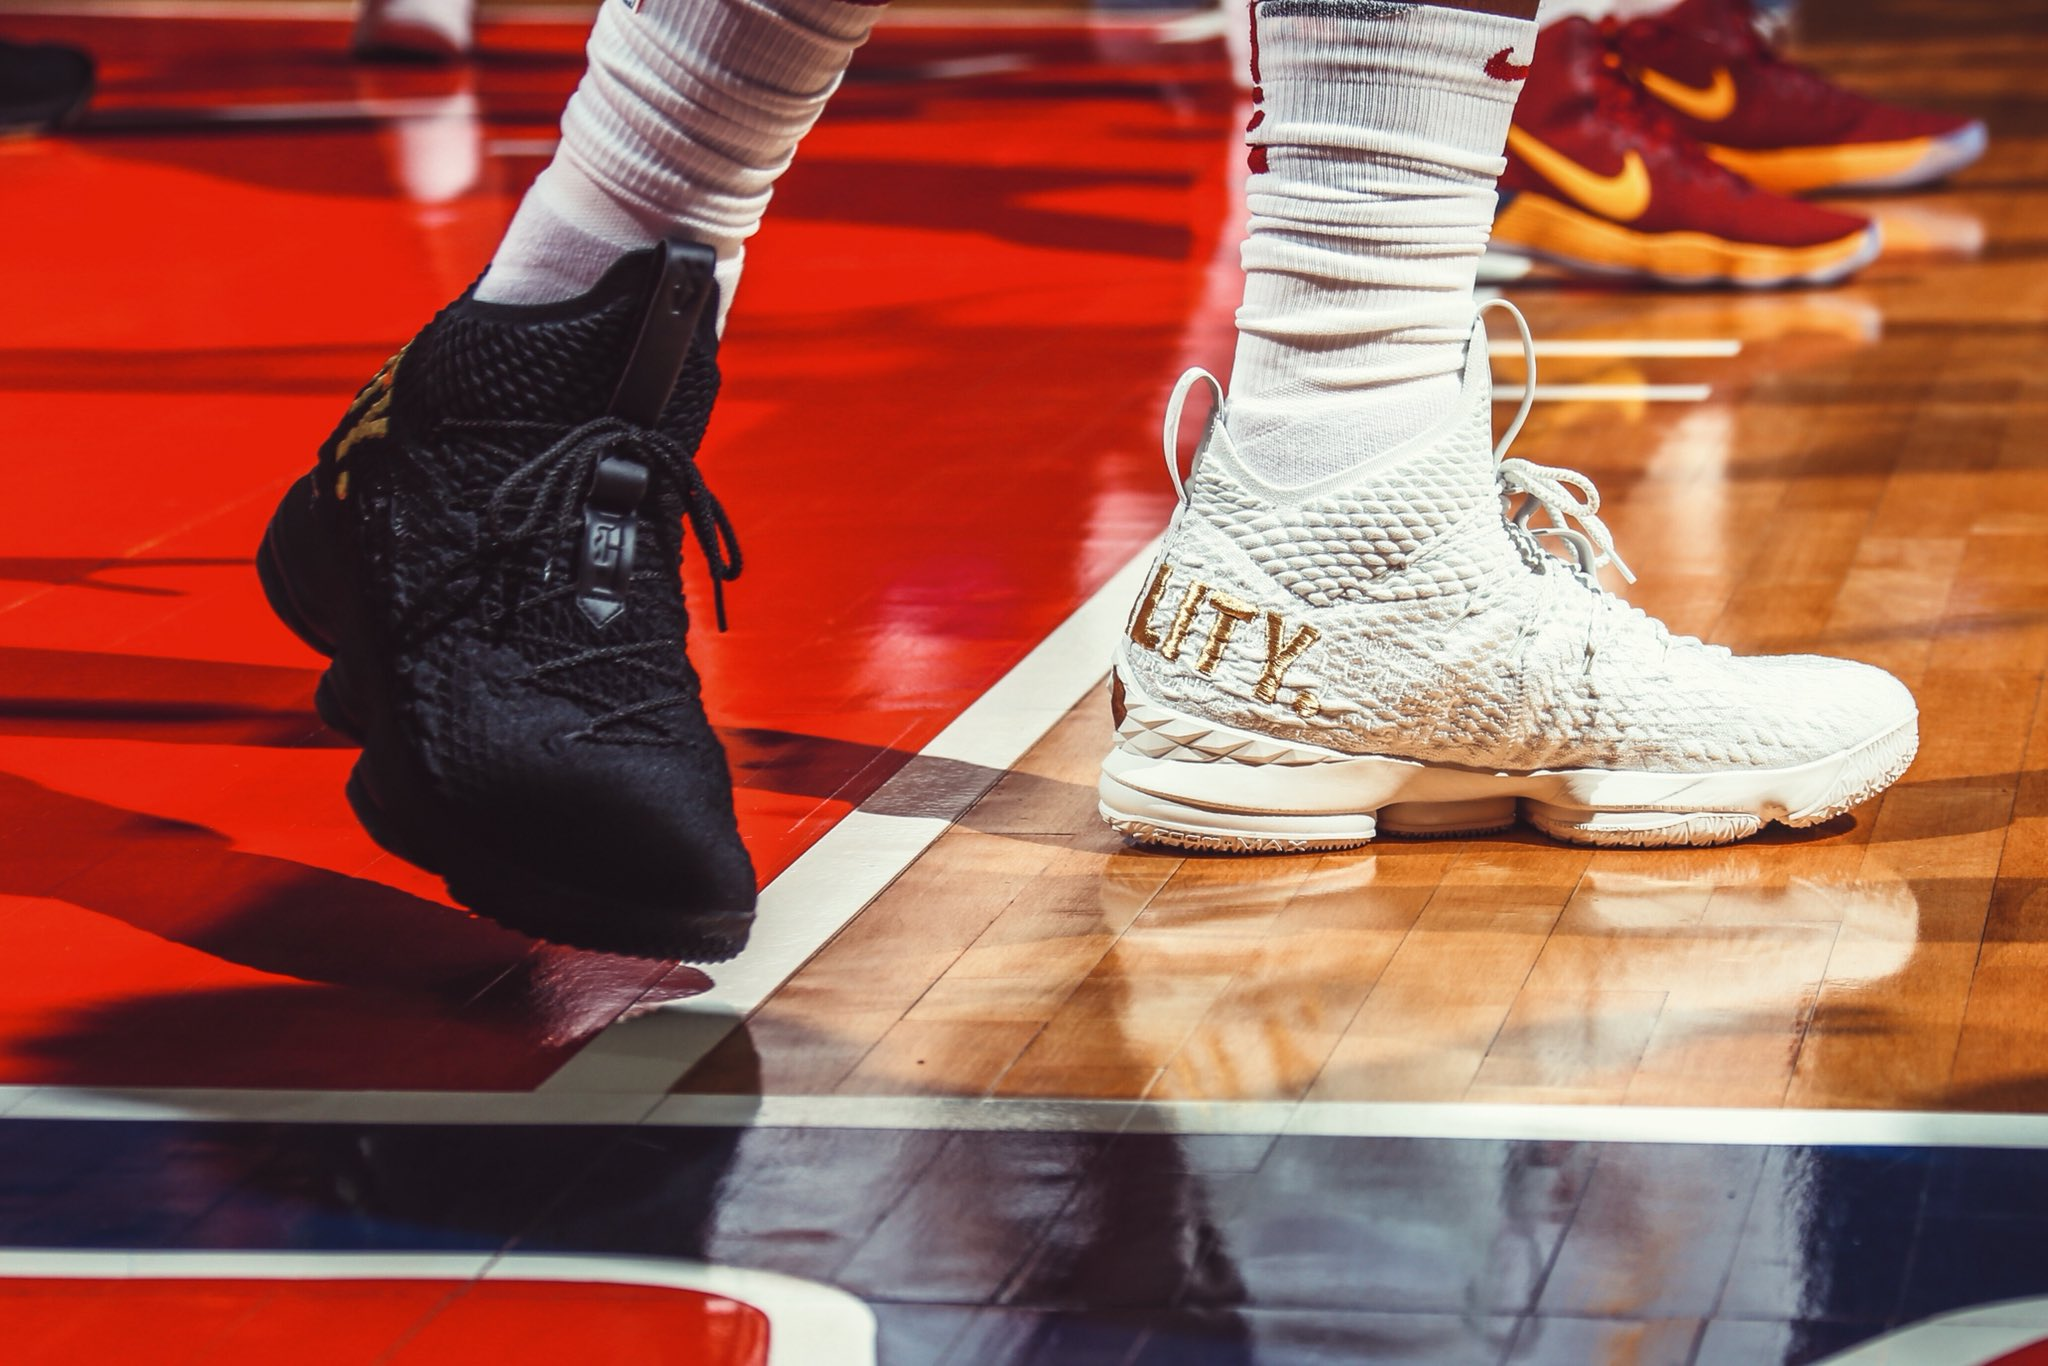 675a4e82d2e ... b r kicks on twitter lebron james in the equality nike lebron 15 pe  tonight vs.